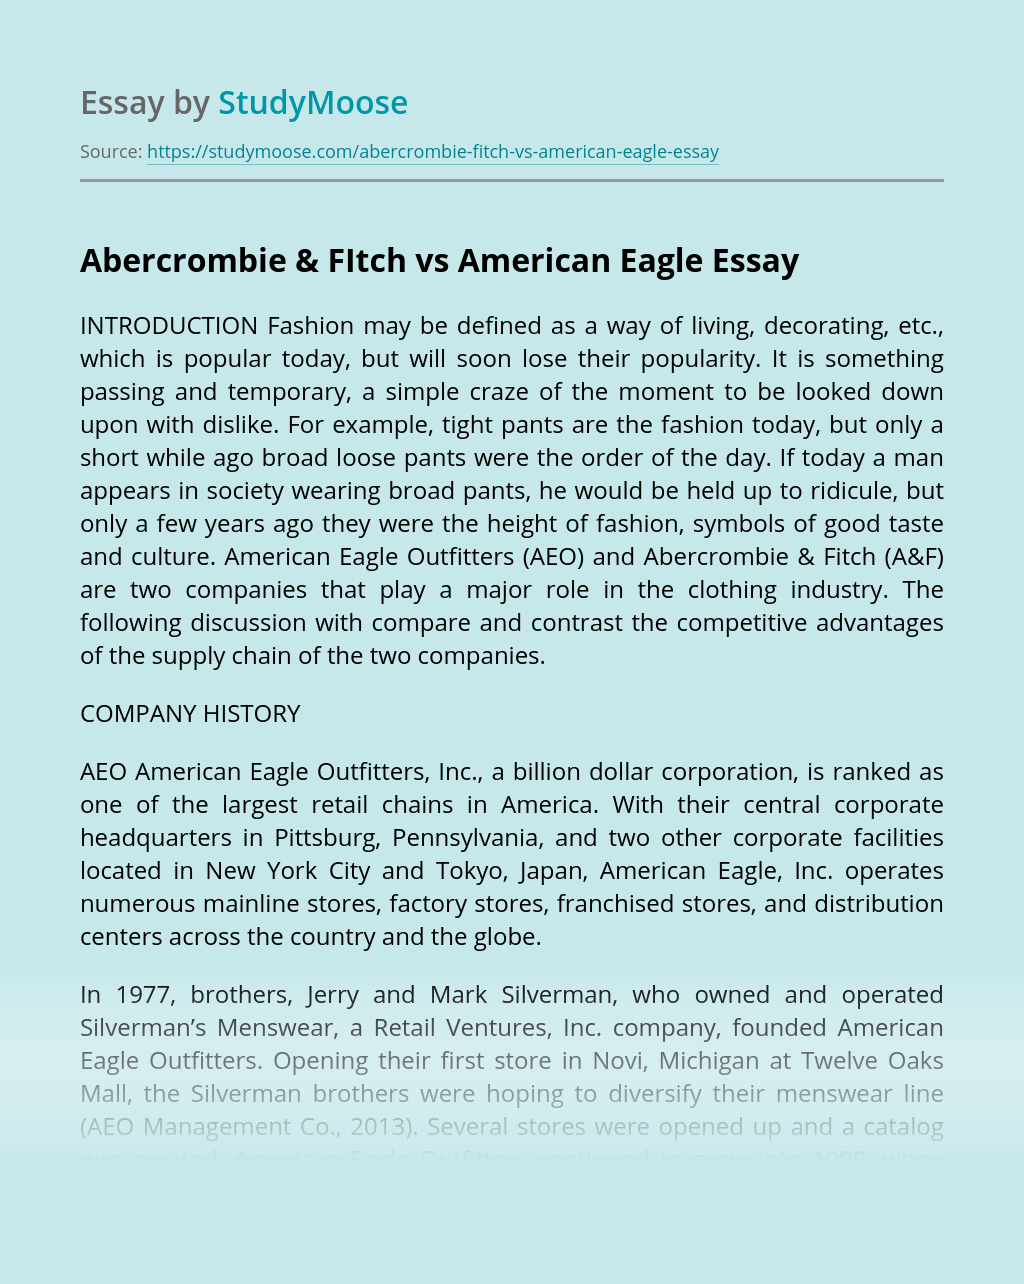 Abercrombie & FItch vs American Eagle